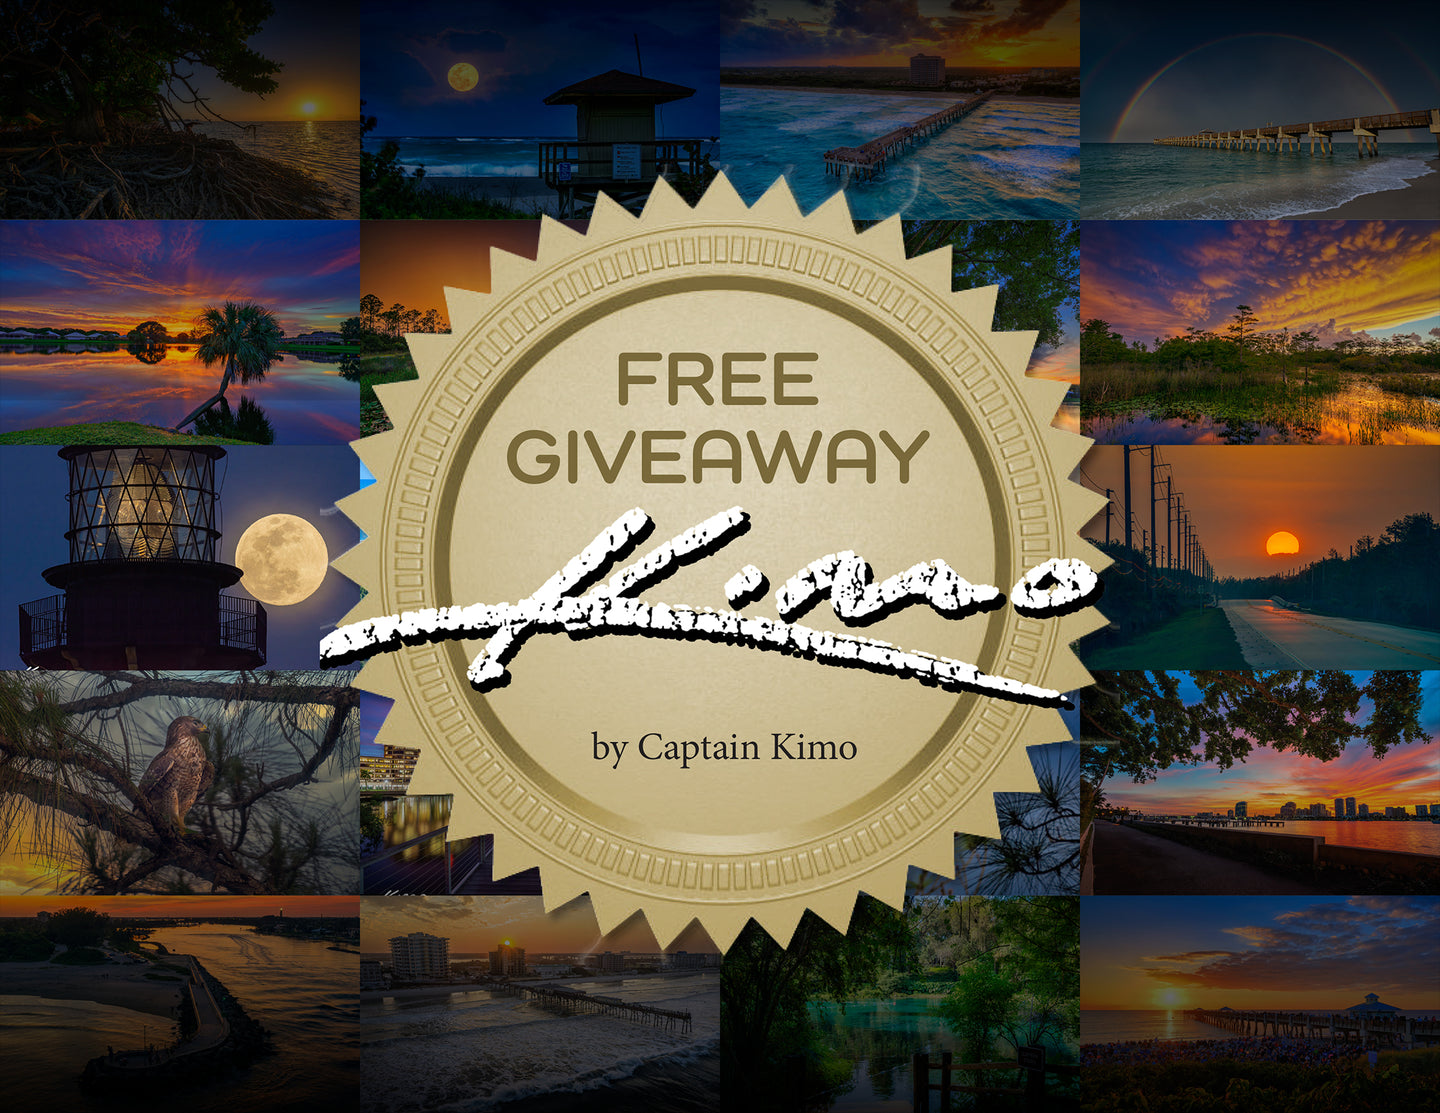 Captain Kimo's Free Product Giveaway